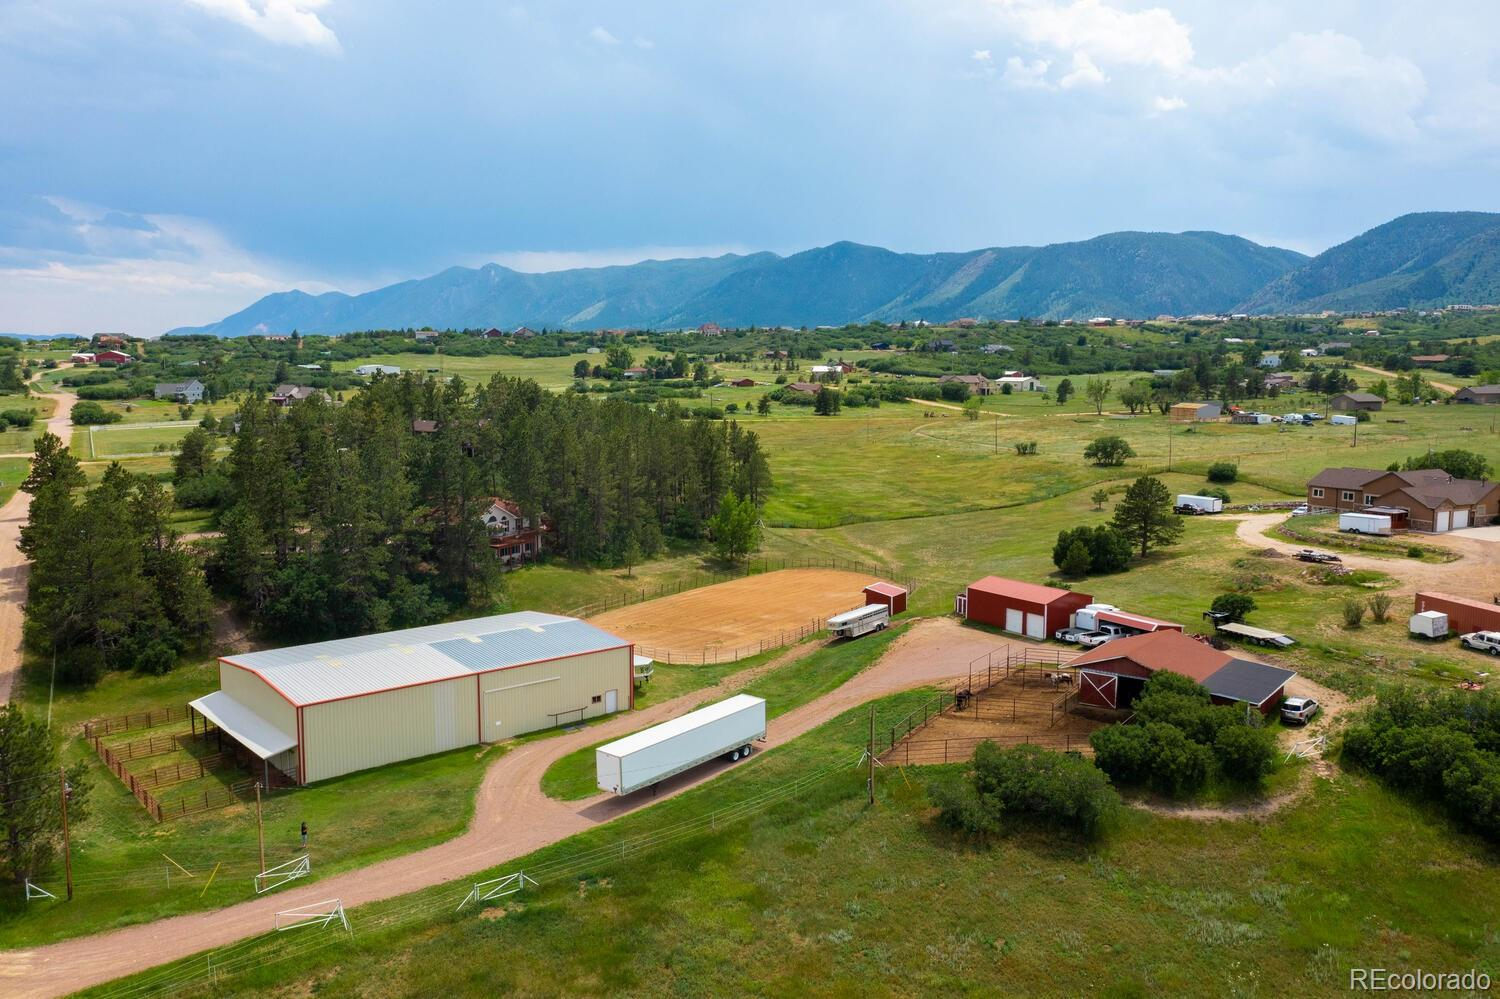 From rolling hills and complete equestrian amenities, this private five-acre retreat is nestled among beautiful pines. The shaded ranch-style home looks out to Pikes National Forest and showcases fabulous views of Mount Herman and the spanning foothills. Here is everything you'll need for equestrian living, including a 60x100' indoor arena, barn, outdoor arena, pastures, and loafing sheds. Plus, miles of riding trails connect you to Pikes National Forest adjacent to the property. With less than three miles to I-25 and downtown Monument, the location doesn't get any better!    When the day is done, kick off your boots and head to the comfortable home with a full walk-out basement. High vaulted ceilings, oak flooring and large widows furnish gorgeous views and fill rooms with loads of sunshine and natural light. An open kitchen ties in nicely with the main living space, and the delightful wrap-around deck surrounding three sides of the home is the ideal spot for relaxing and taking in the panorama of majestic mountains and grassy meadows.   Two gated driveways provide easy access to the property, which is fully fenced. The three-stall horse barn features padded floors, tack and hay room, automatic watering system and adjacent fenced-in pasture. An expansive indoor arena includes an additional five stalls with connected runs, and a separate vehicle/loafing shed is an added bonus. Park in the two-car attached garage while the oversized, detached two-car workshop is ideal for vehicles of all types. All buildings are in excellent condition and move-in ready. Here's your opportunity to live with your finest equines always in view.